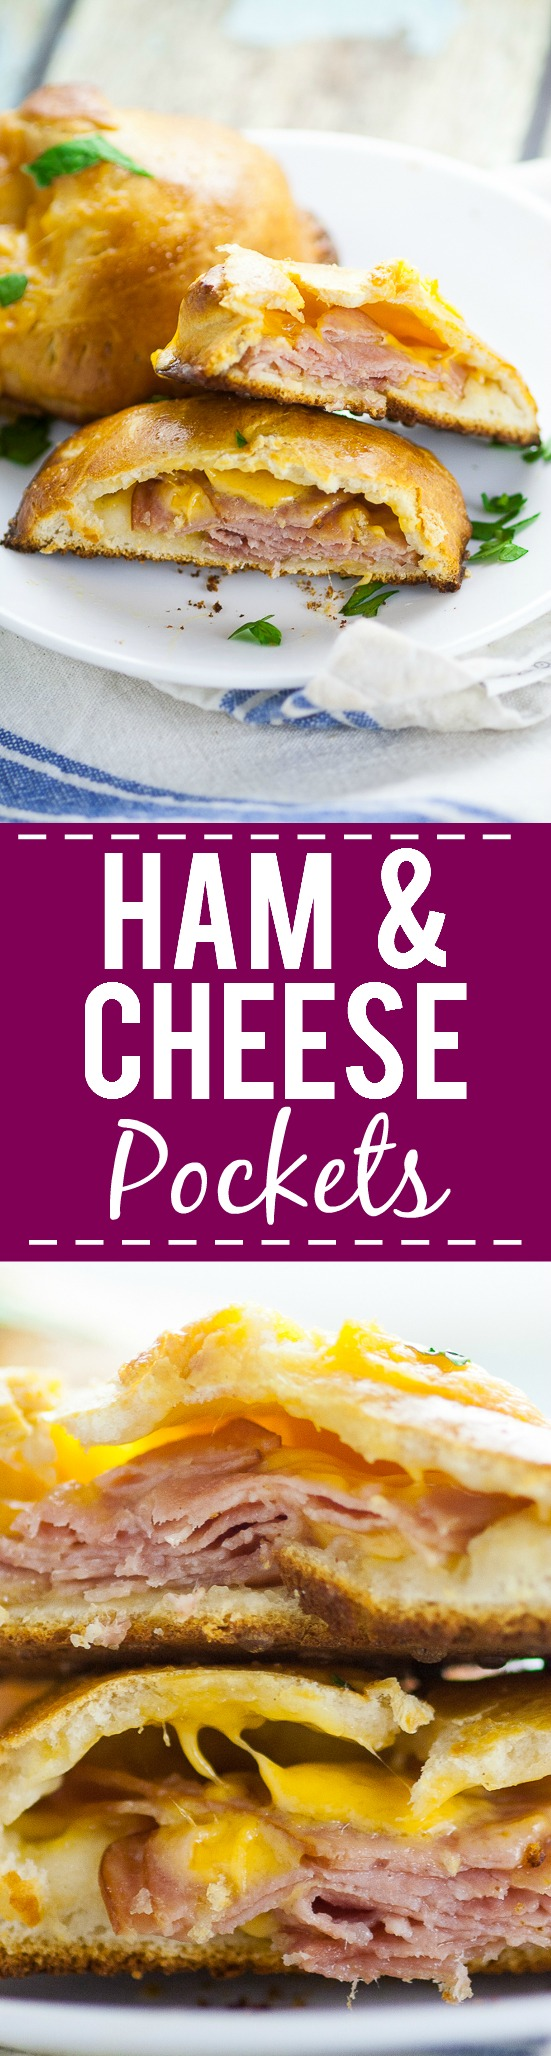 Ham and Cheese Pockets Recipe - For a quick and easy, on-the-go meal make these yummy, cheesy Ham and Cheese Pockets with just 5 ingredients in 30 minutes or less! They're freezer friendly too!